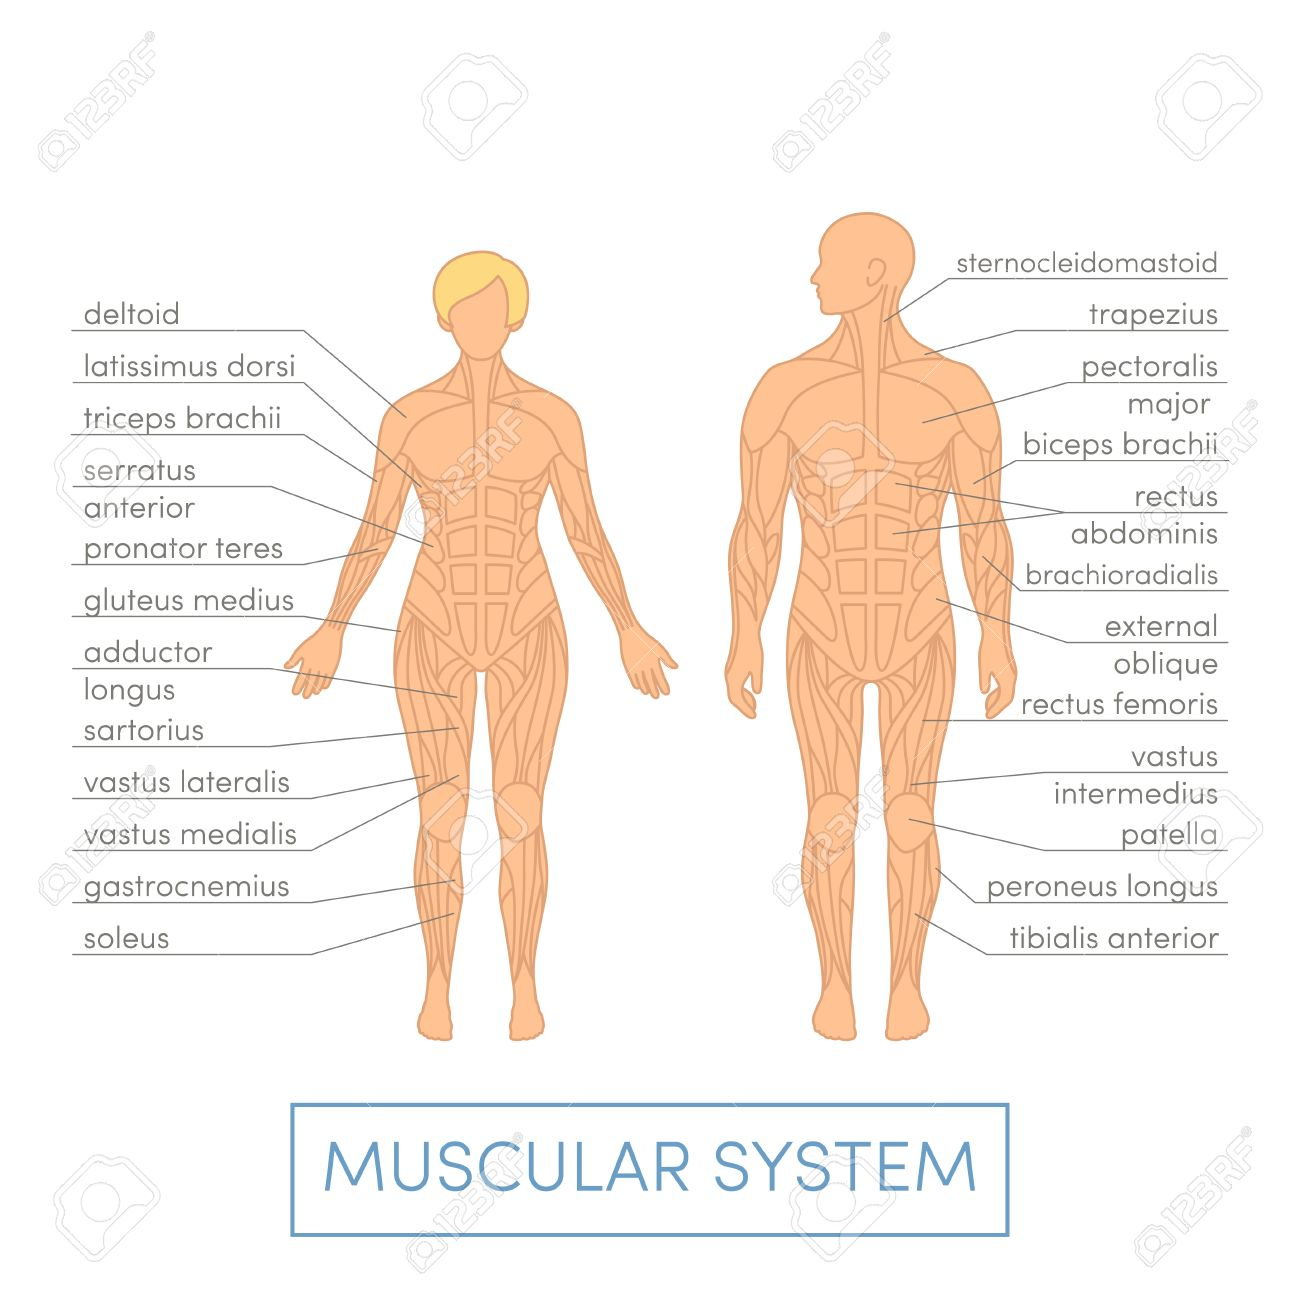 Muscular System Of A Human. Cartoon Illustration For Medical.. Stock ...